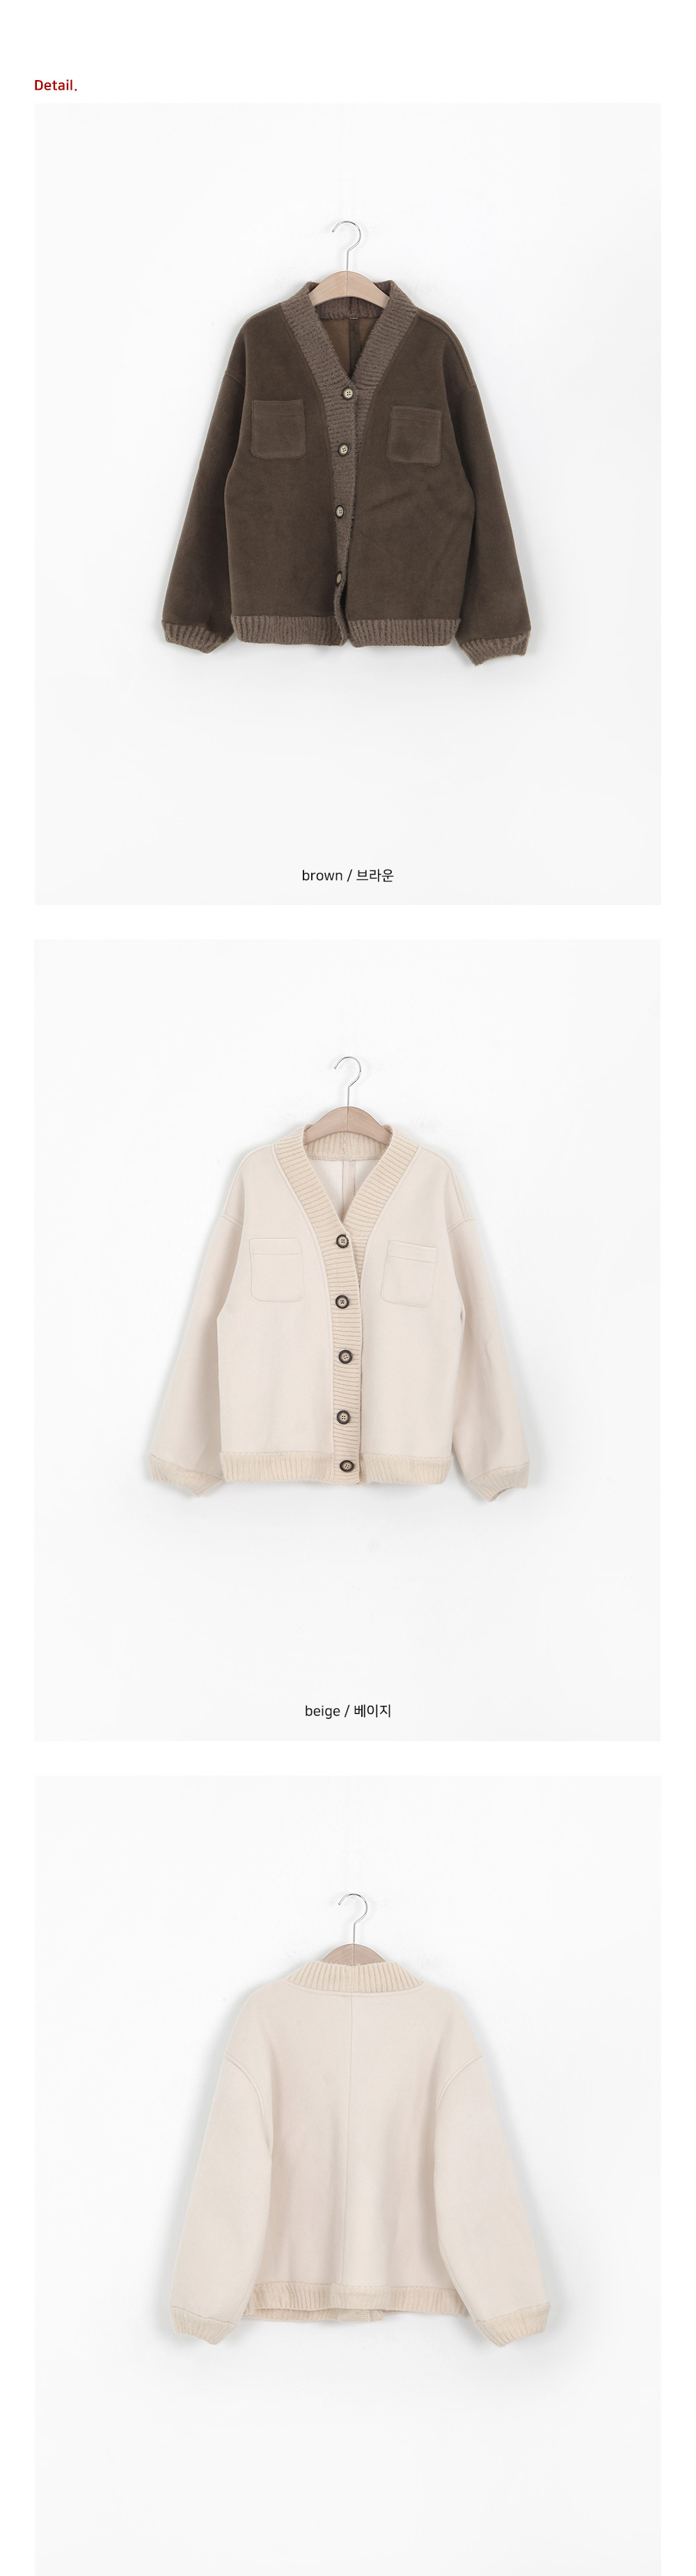 Chestnut Button Single Jacket